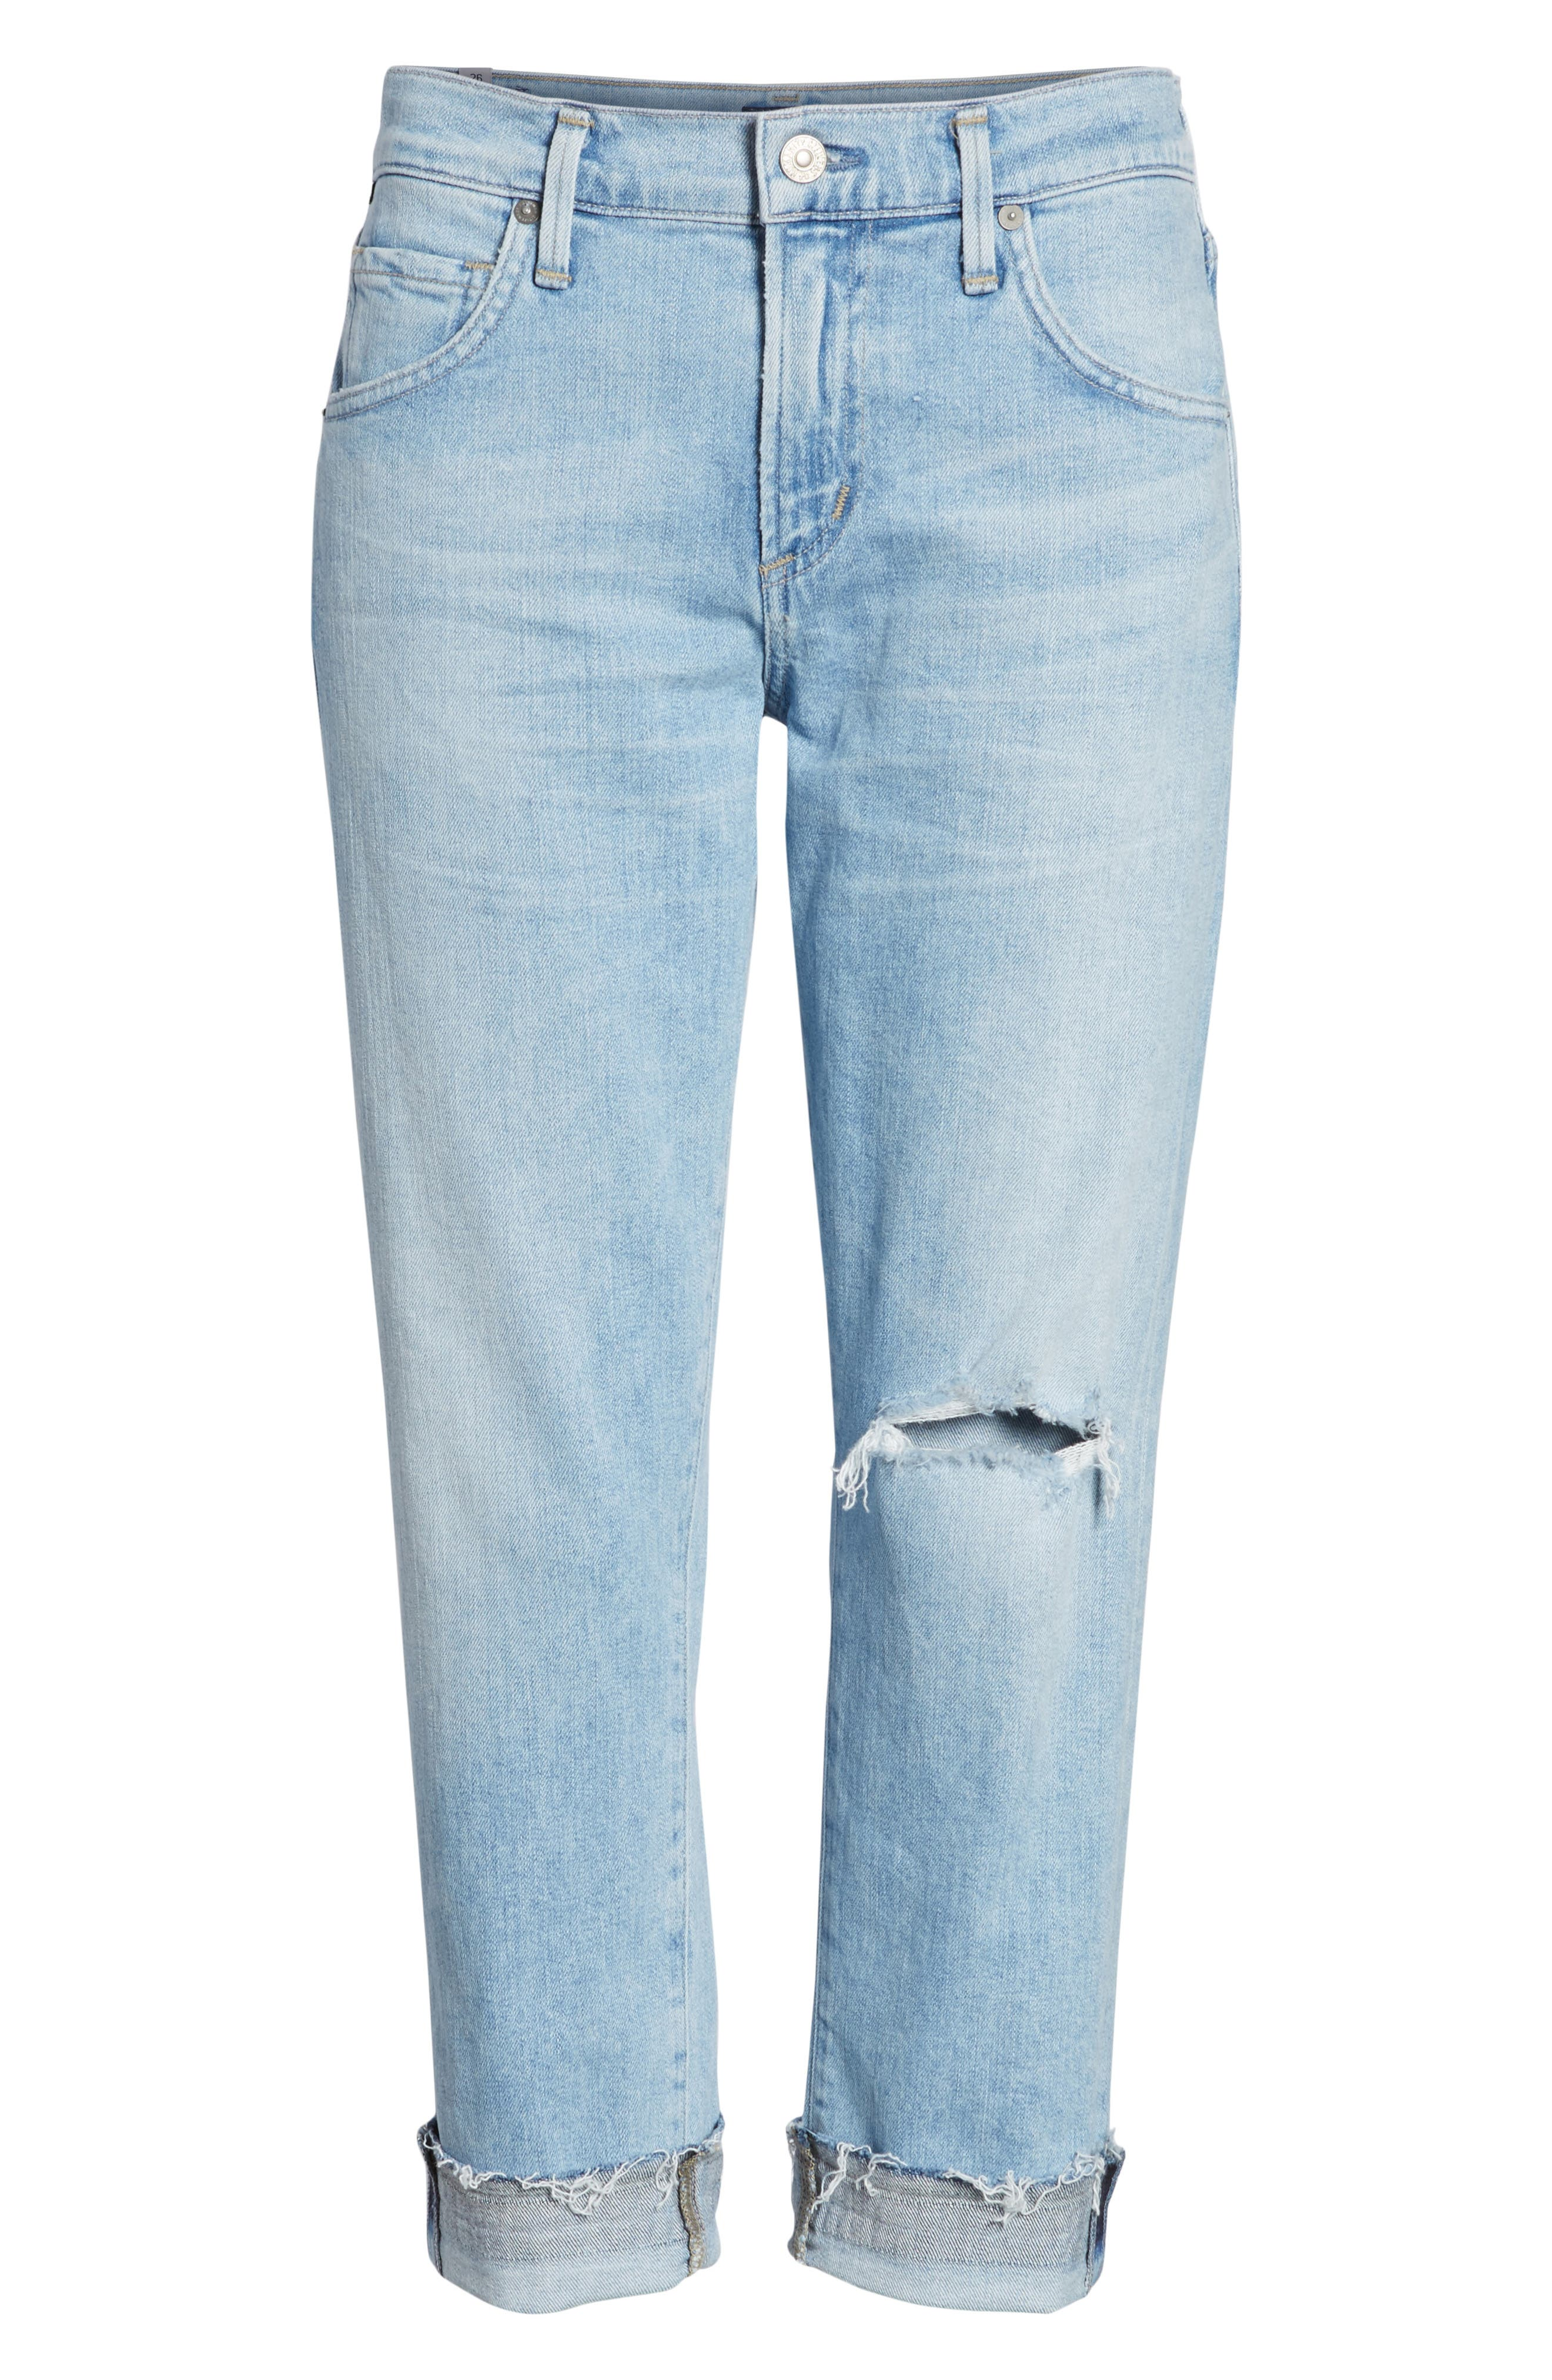 CITIZENS OF HUMANITY,                             Emerson Ripped Crop Slim Boyfriend Jeans,                             Alternate thumbnail 7, color,                             455